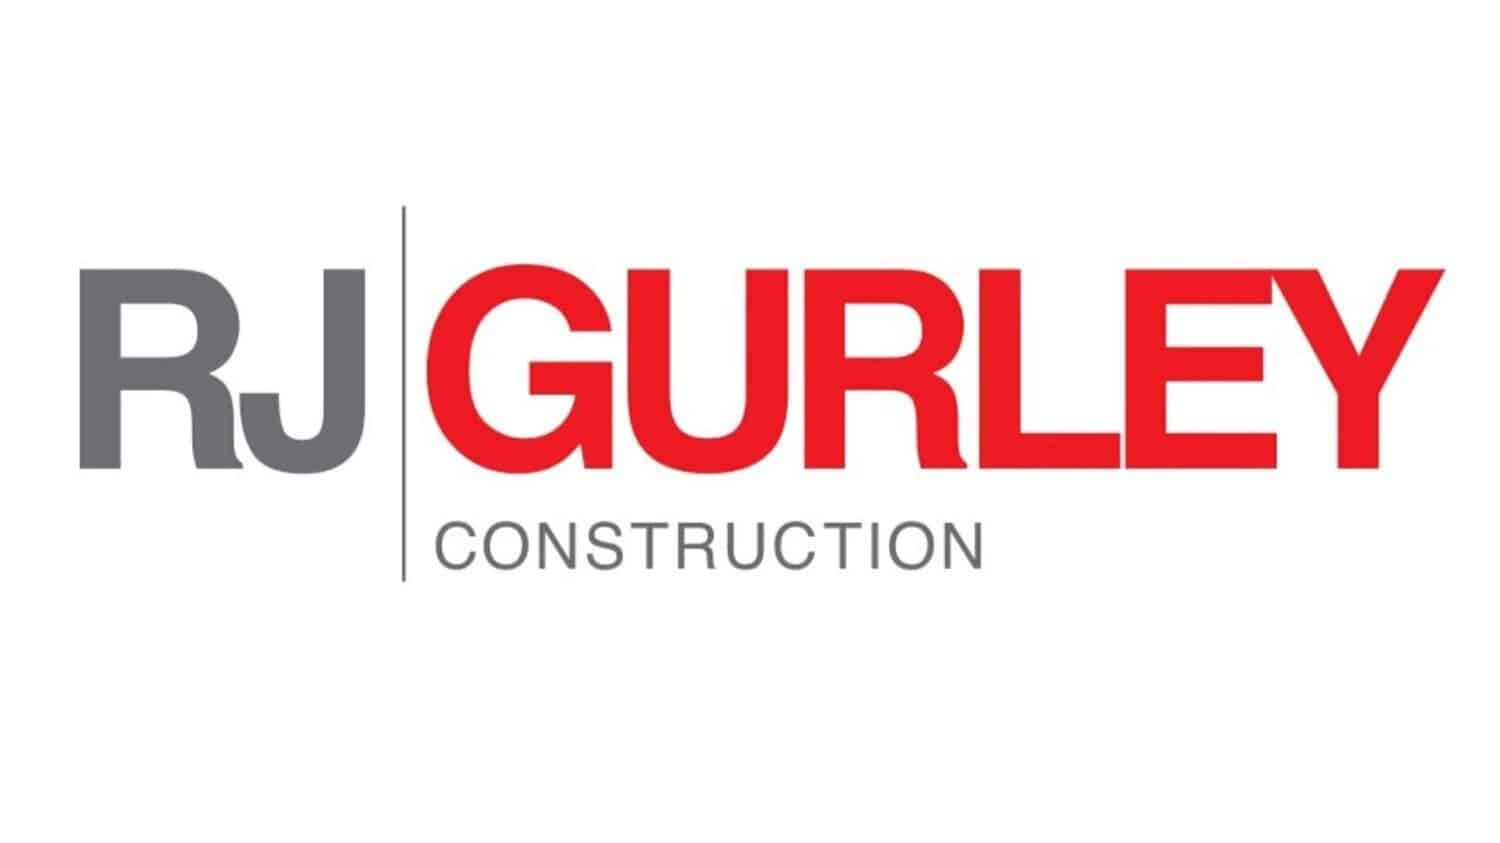 gurley-construction-custom-home-builders-scottsdale-build-magazine-logo